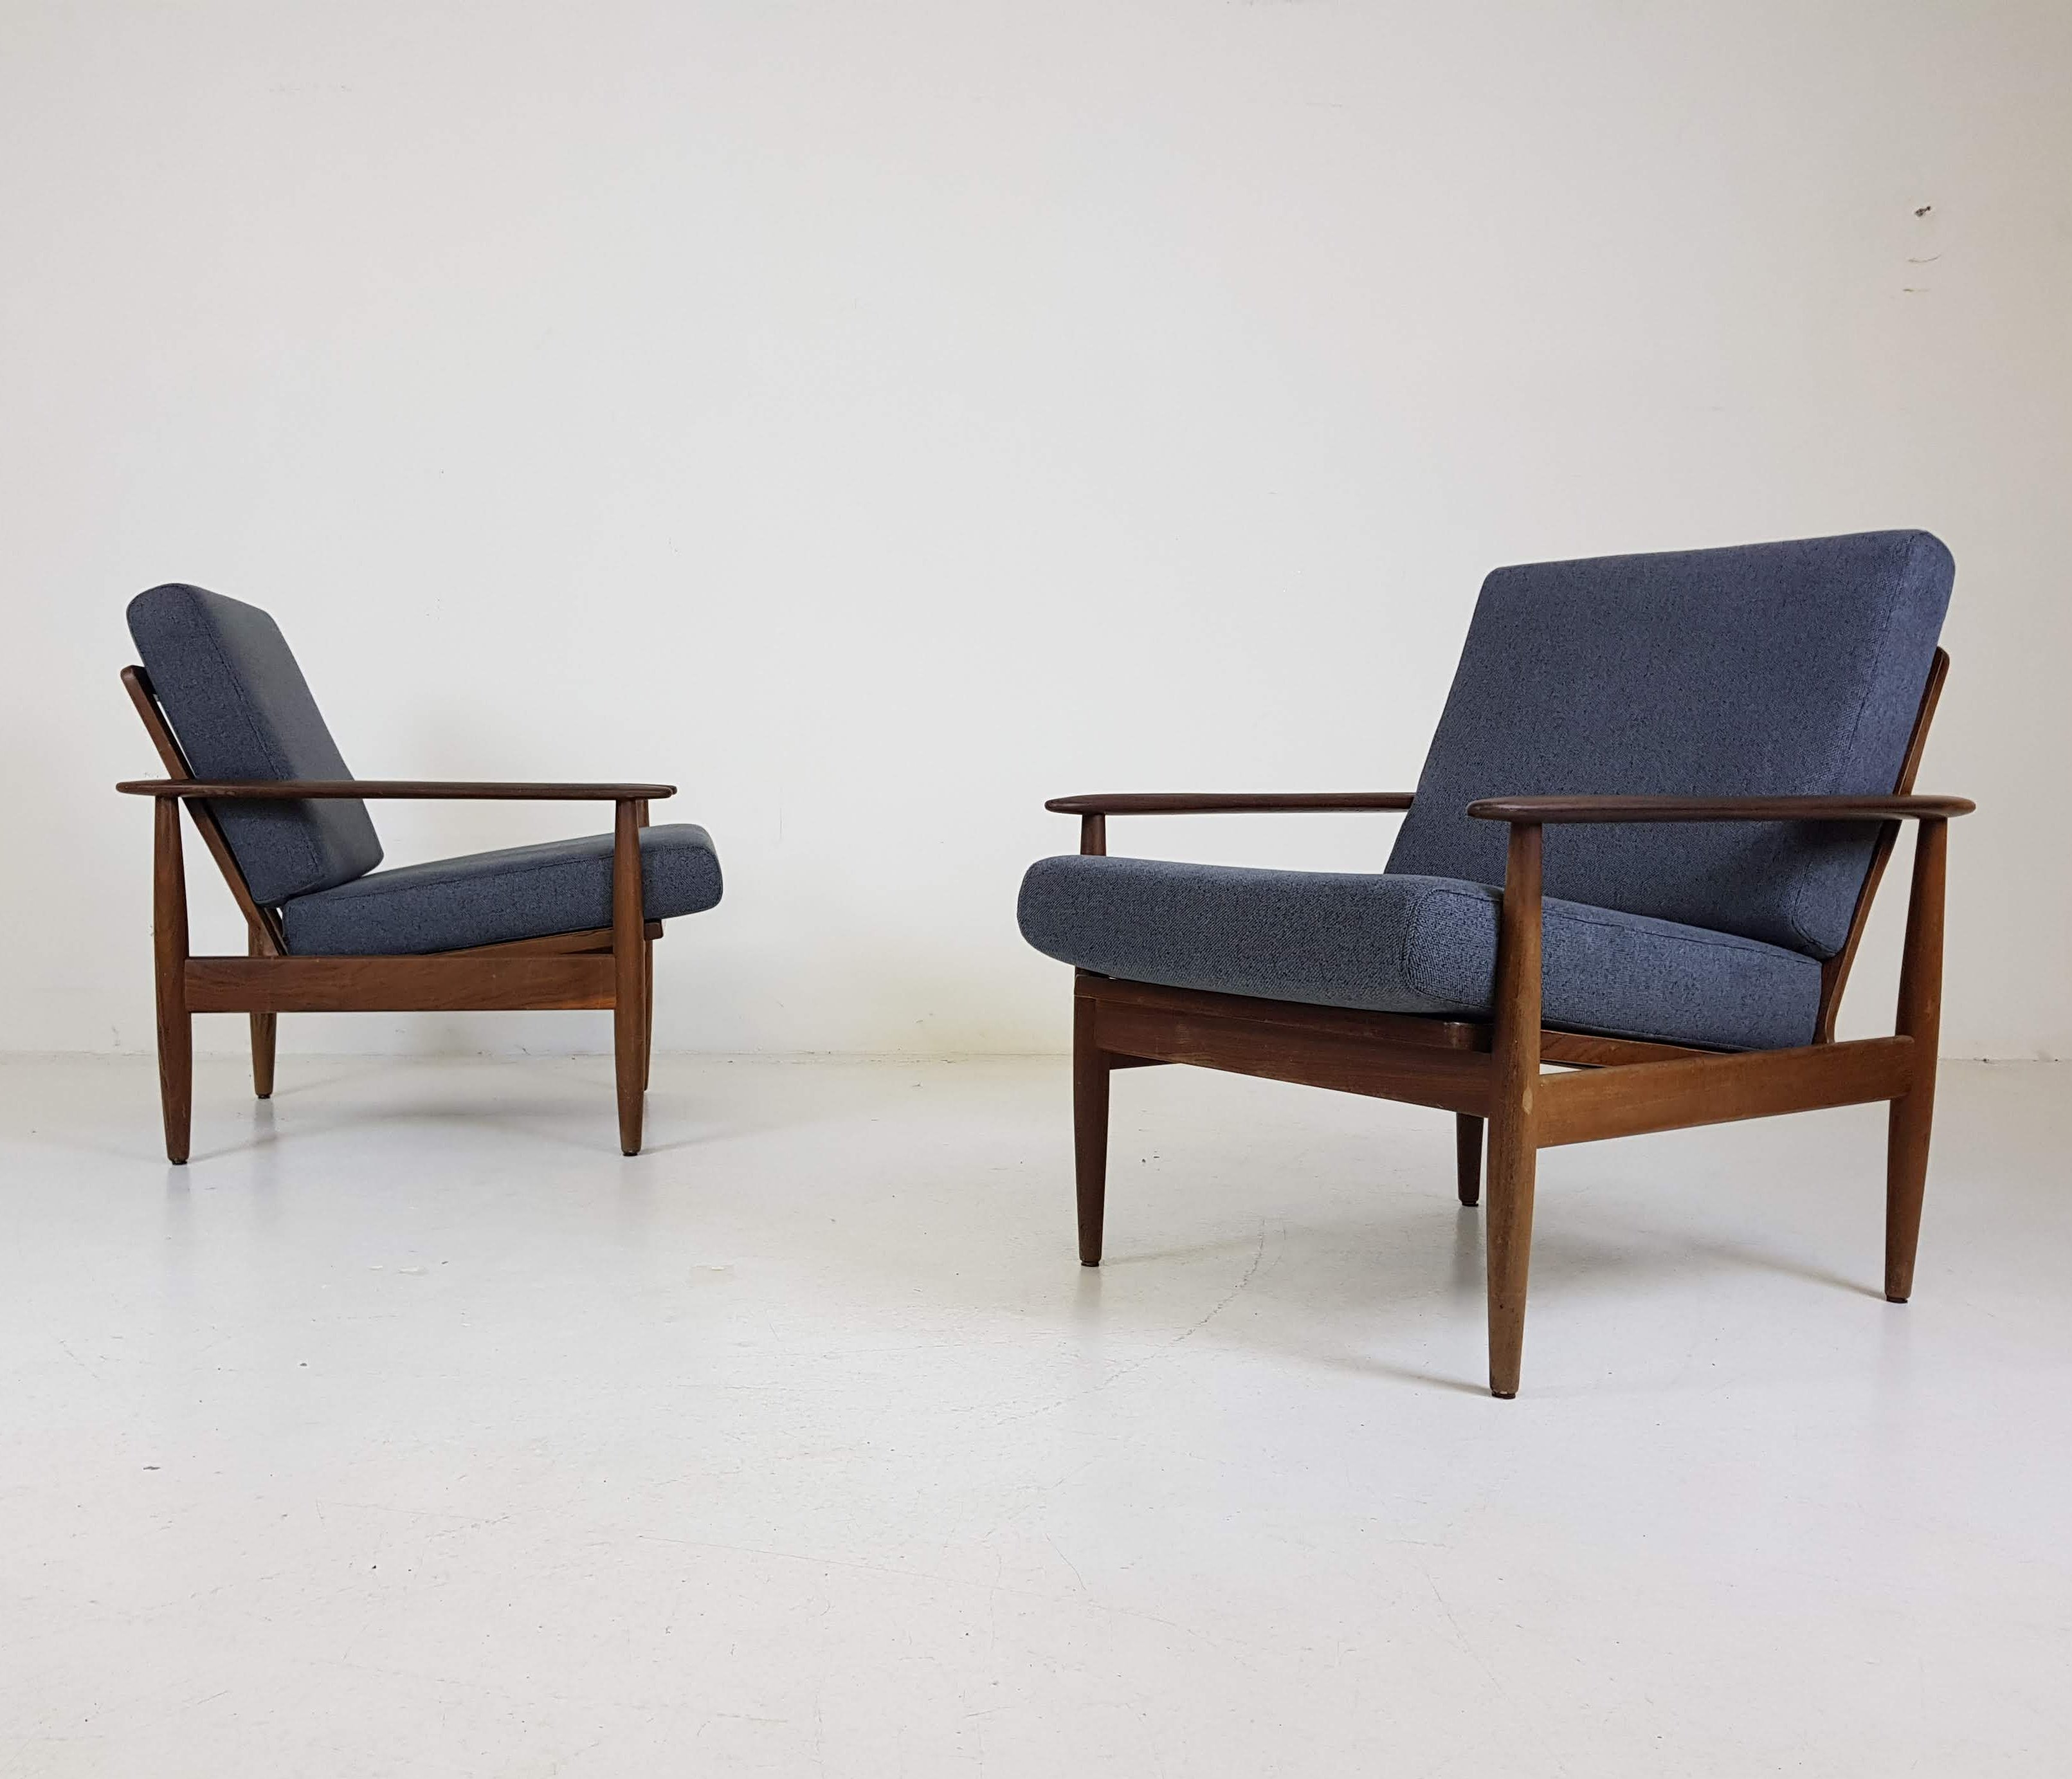 Pleasant Set Of 2 Scandinavian Modern Lounge Chairs 1960S Gmtry Best Dining Table And Chair Ideas Images Gmtryco